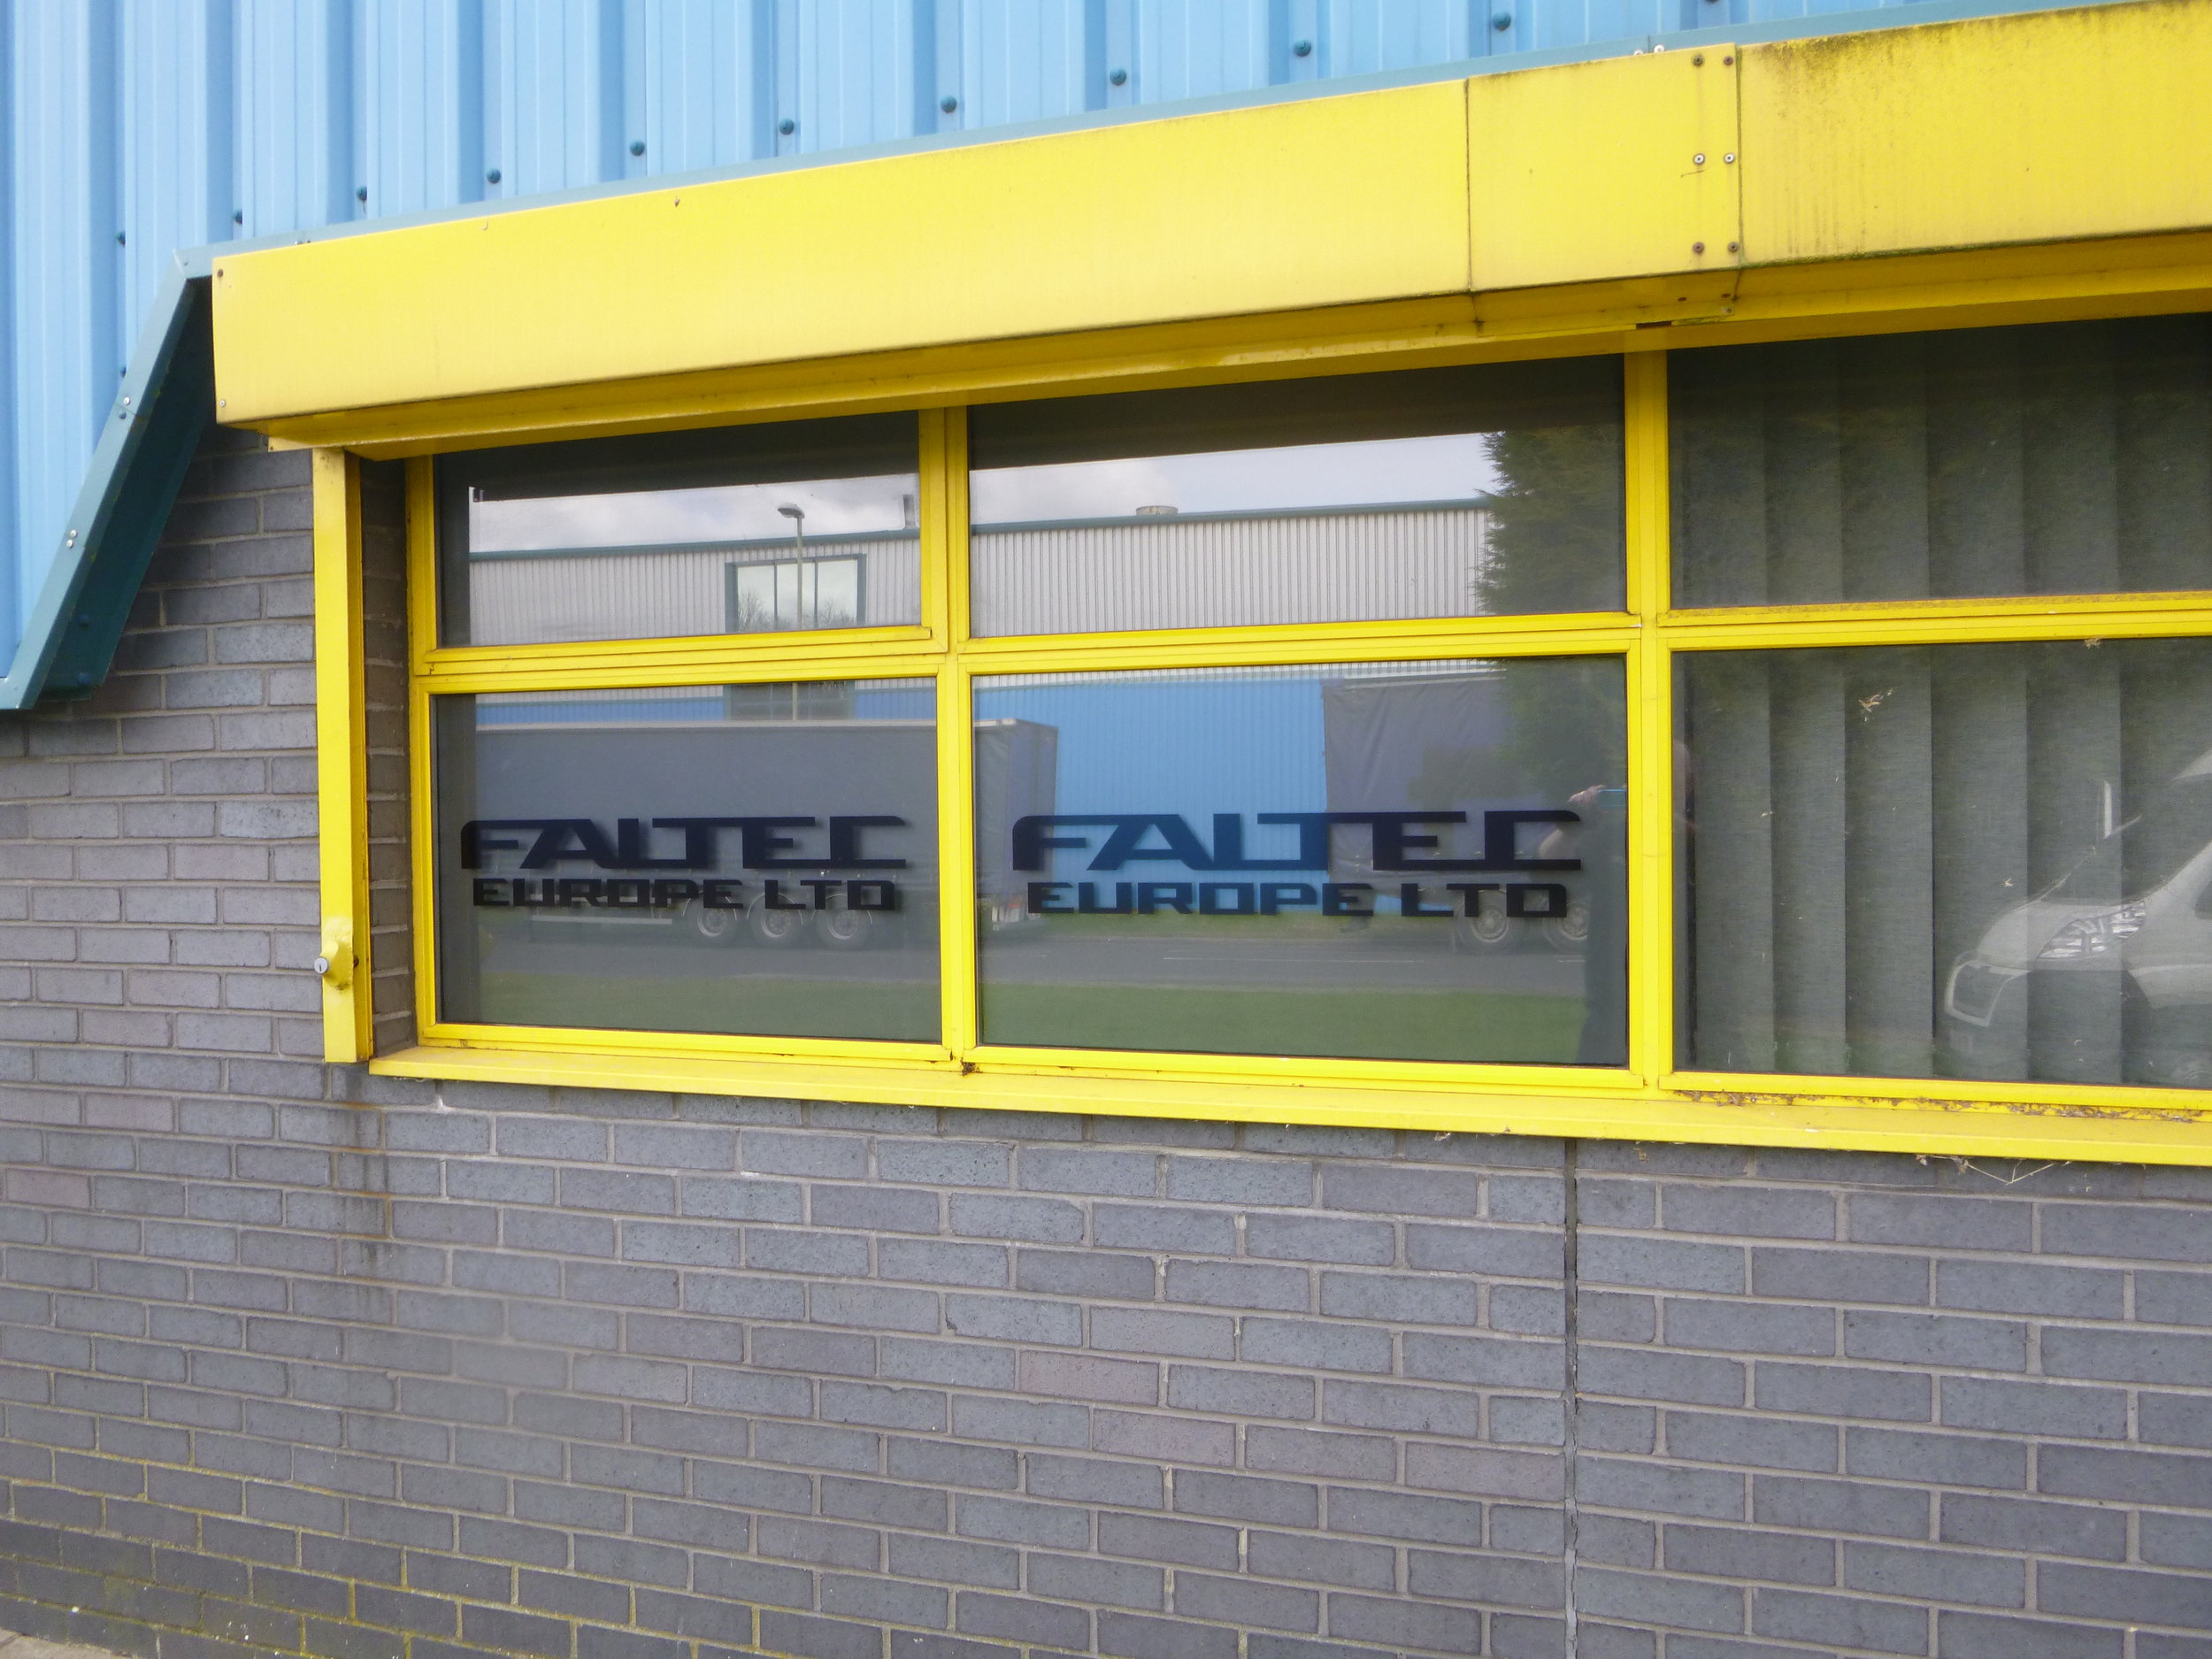 FALTEC   Print and cut window decals, fitted internally.